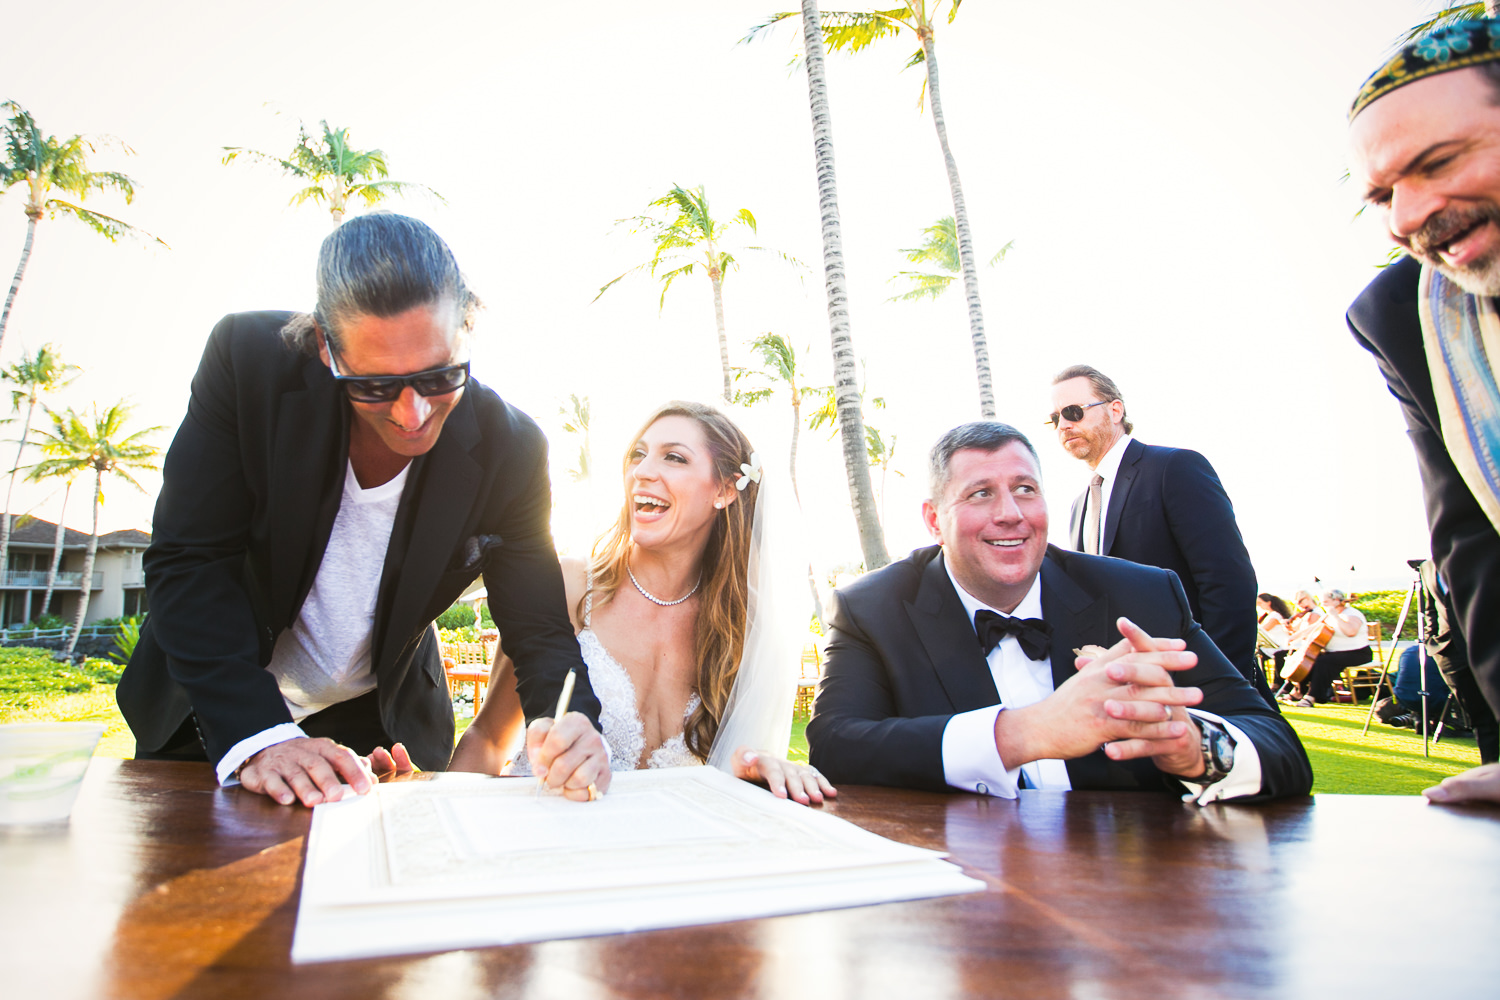 Signing the ketubah at a Outdoor Wedding Ceremony at the Four S